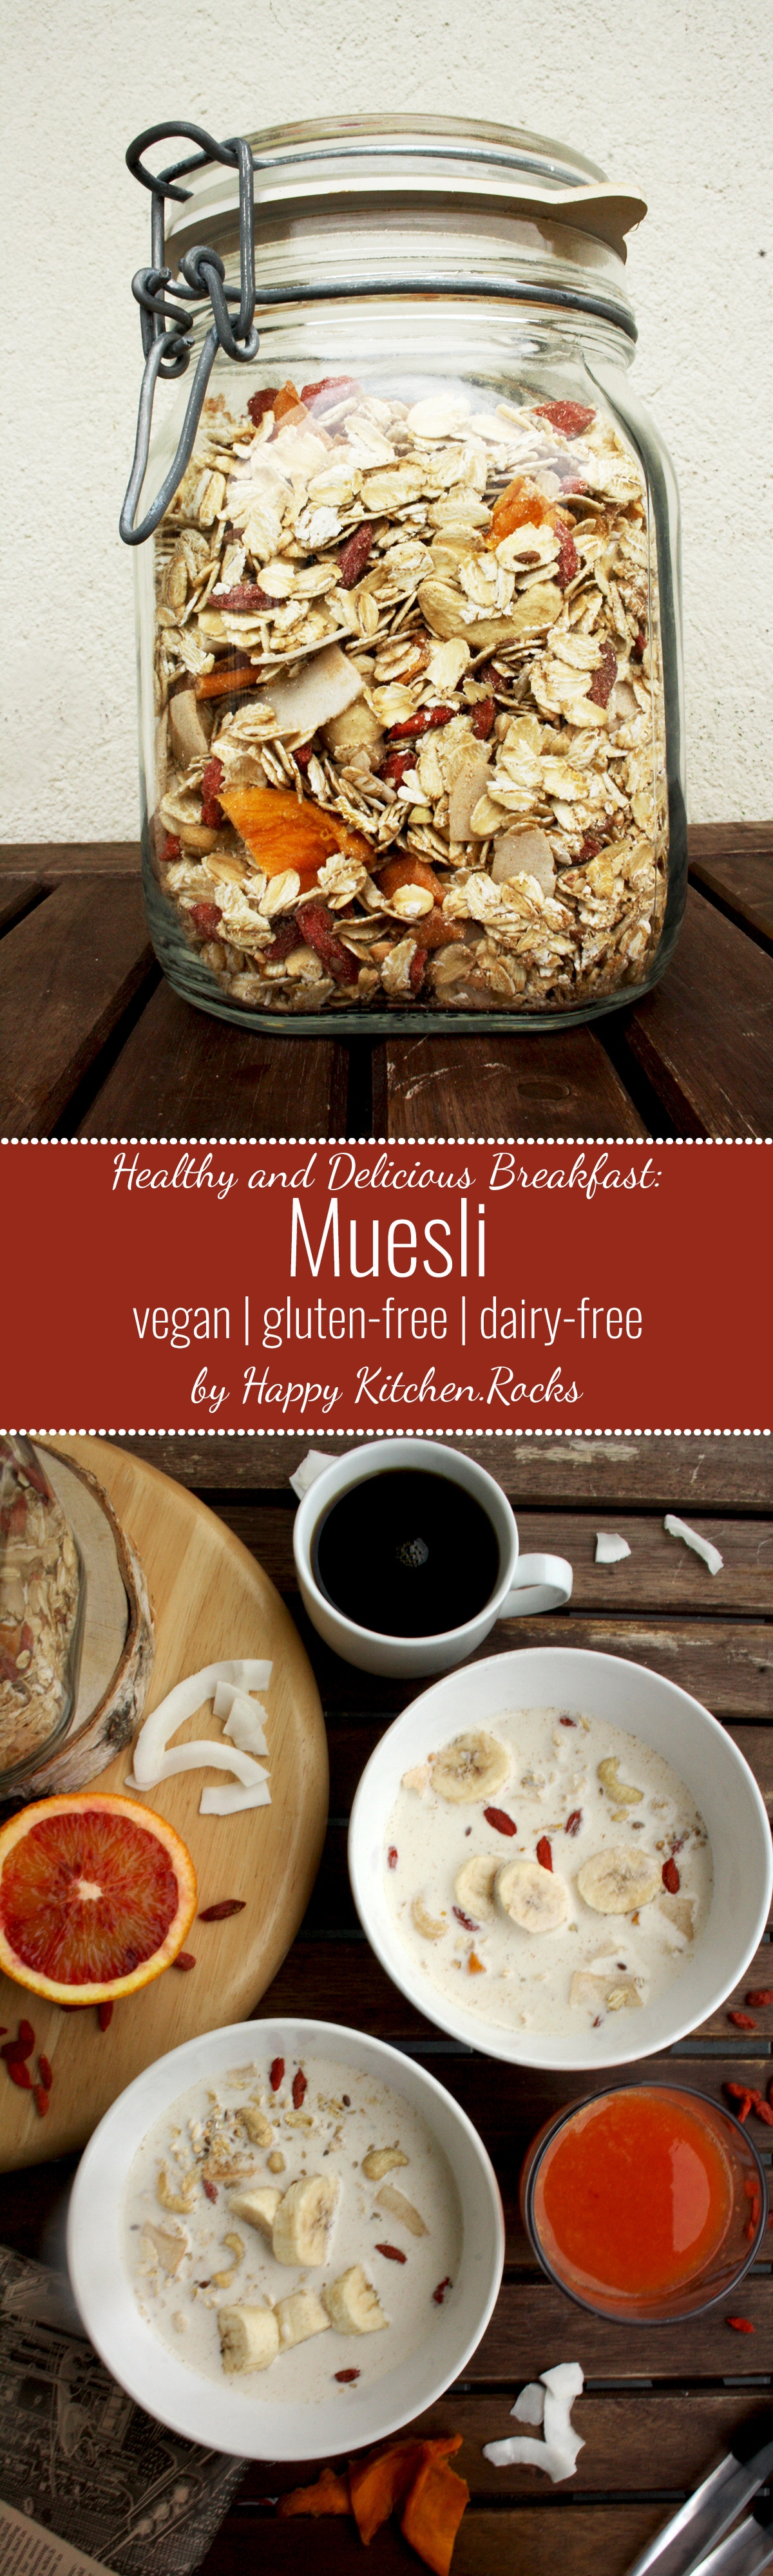 Muesli recipe a healthy and delicious breakfast idea happy muesli recipe delicious wholesome nutritious and quick breakfast based on grains nuts forumfinder Choice Image